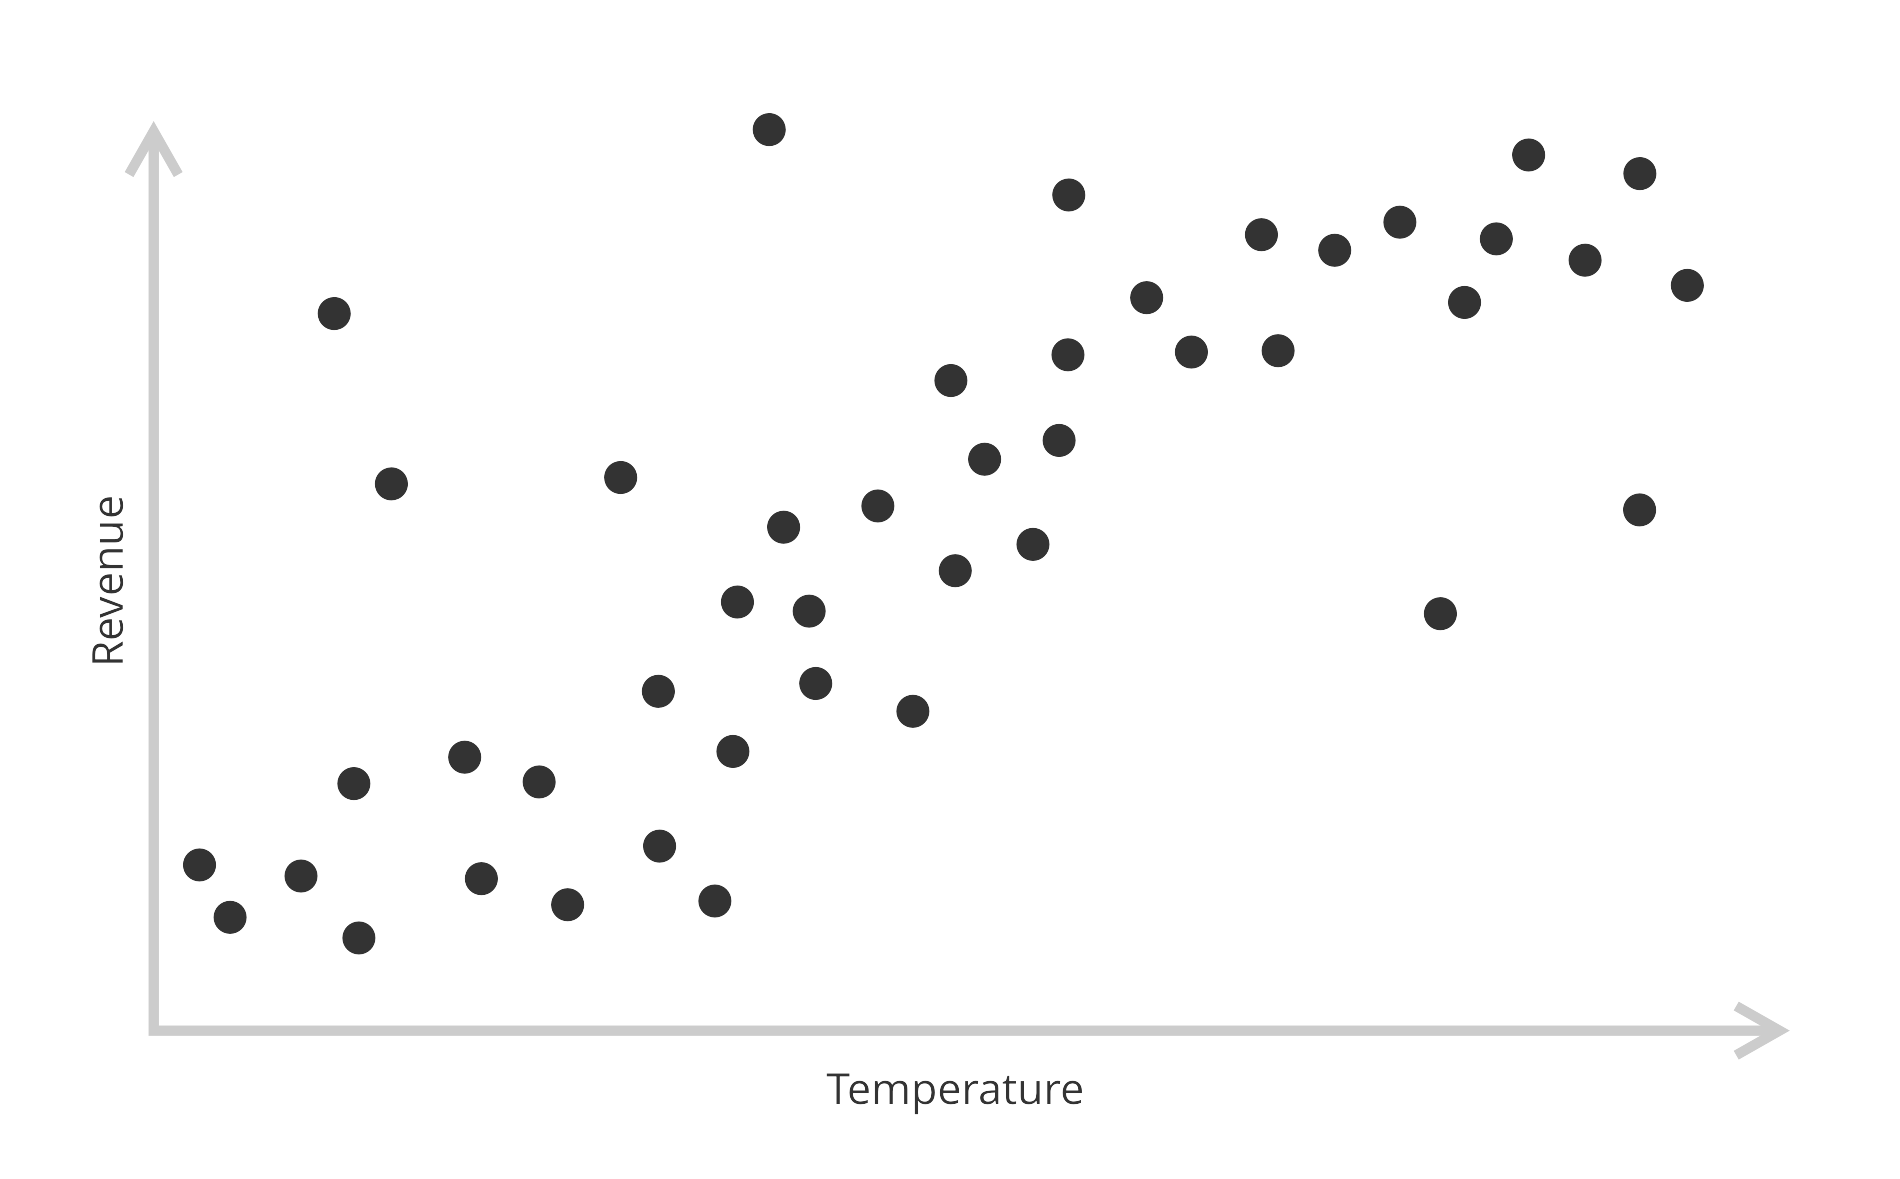 A scatter plot showing the same correlation with some outliers and noise